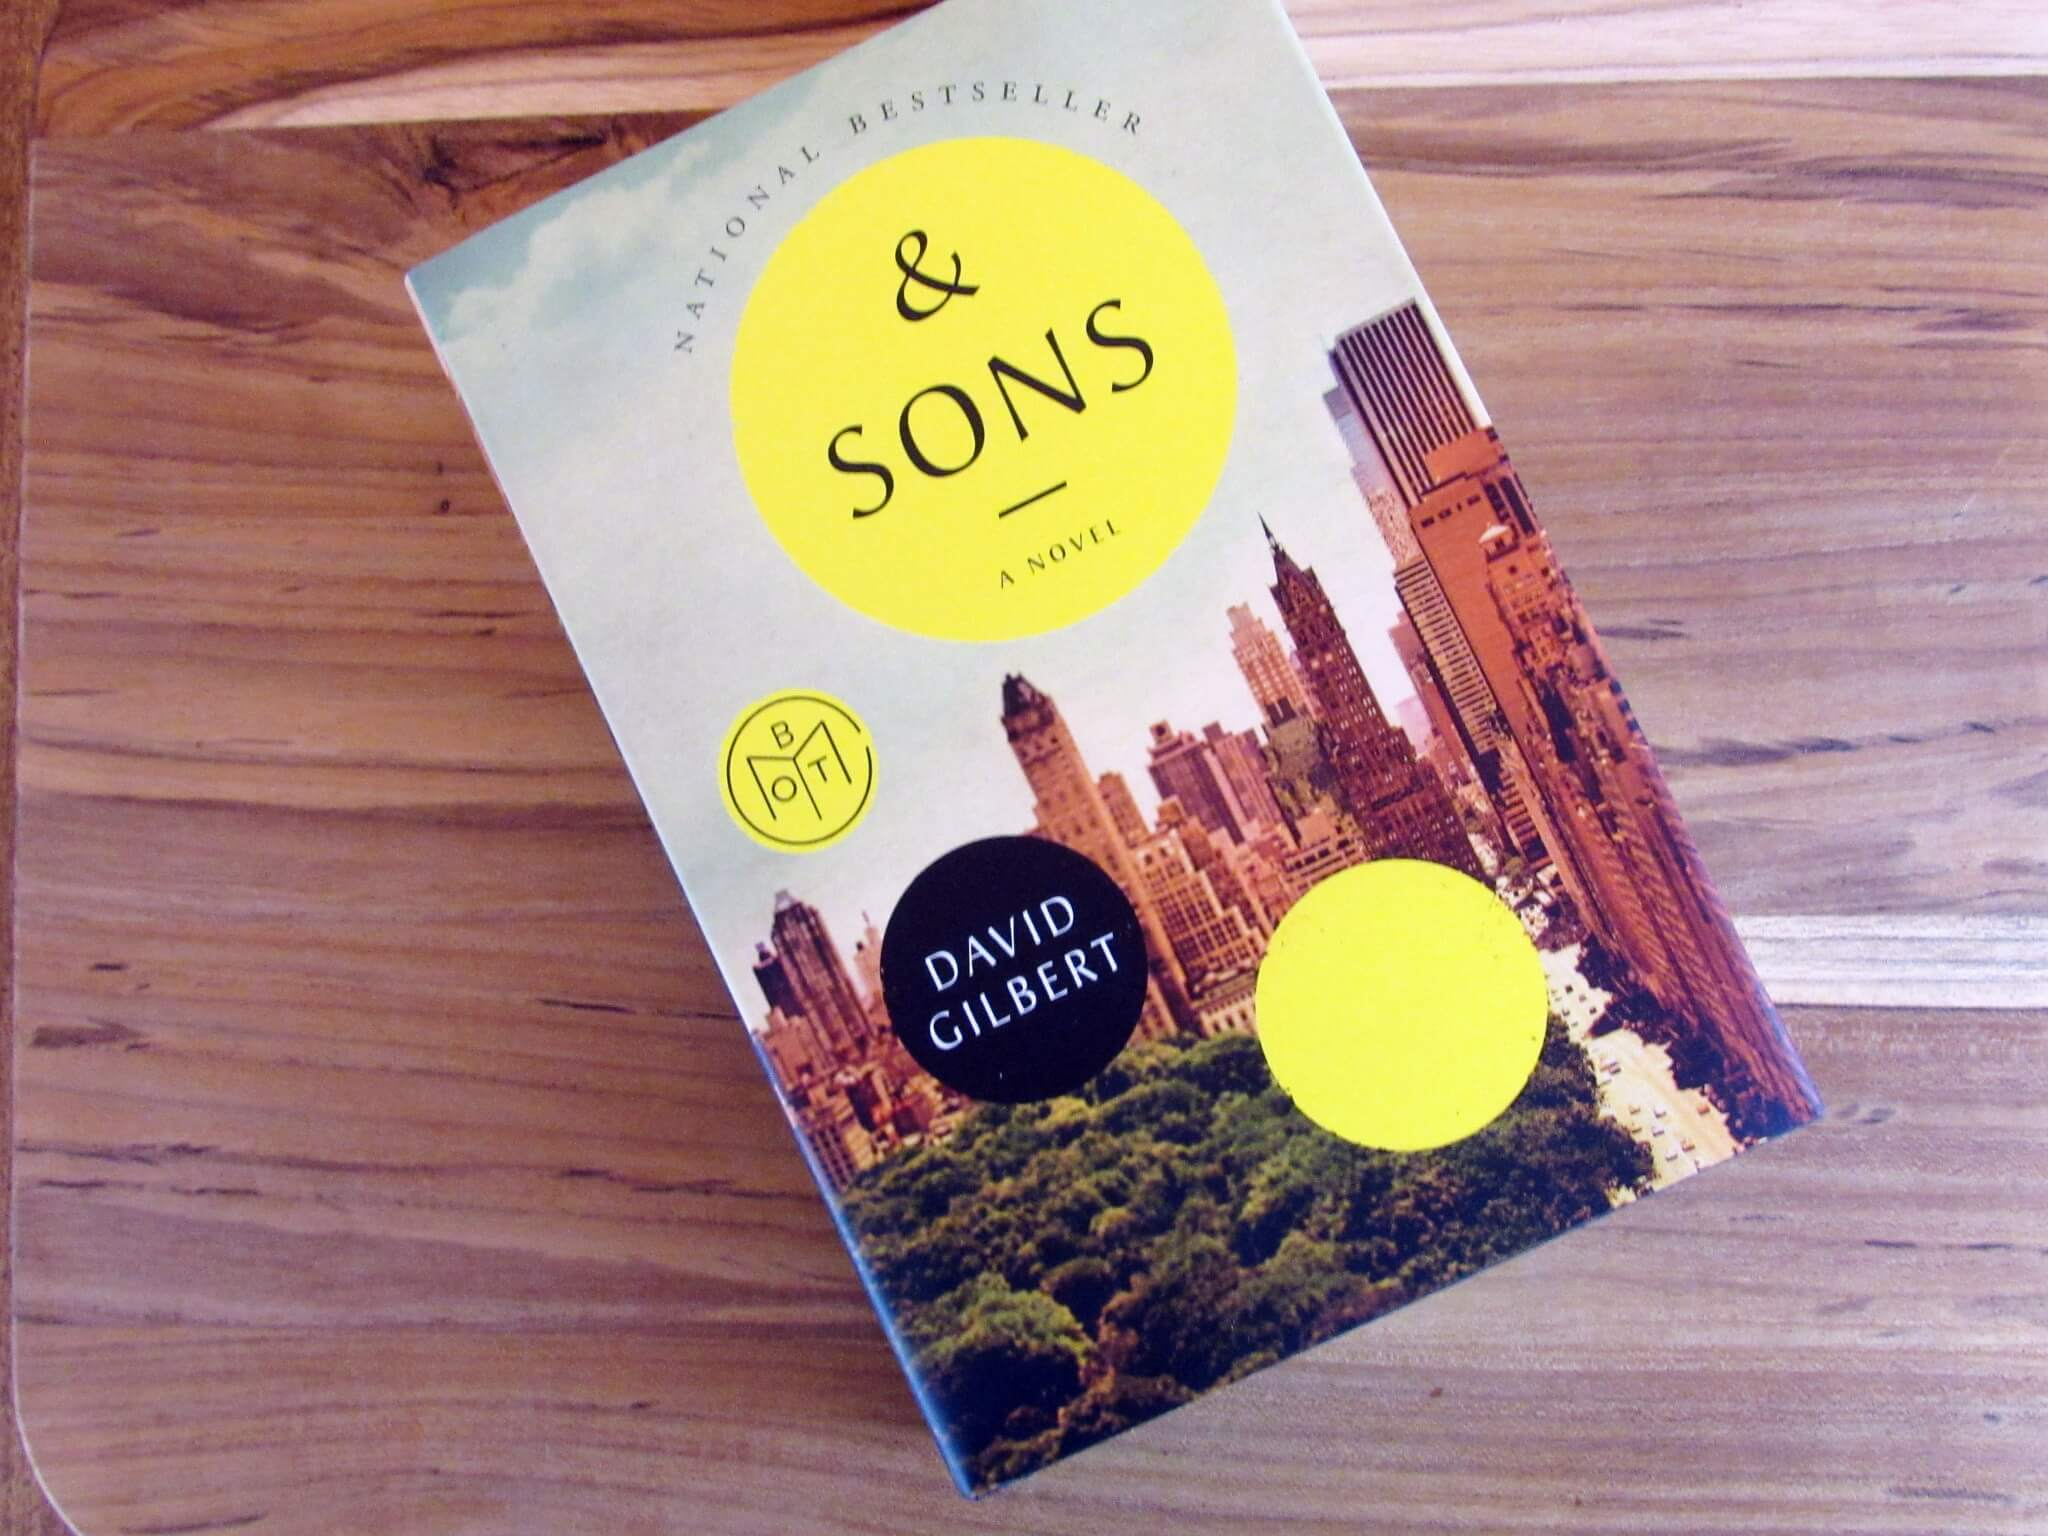 & SOns by